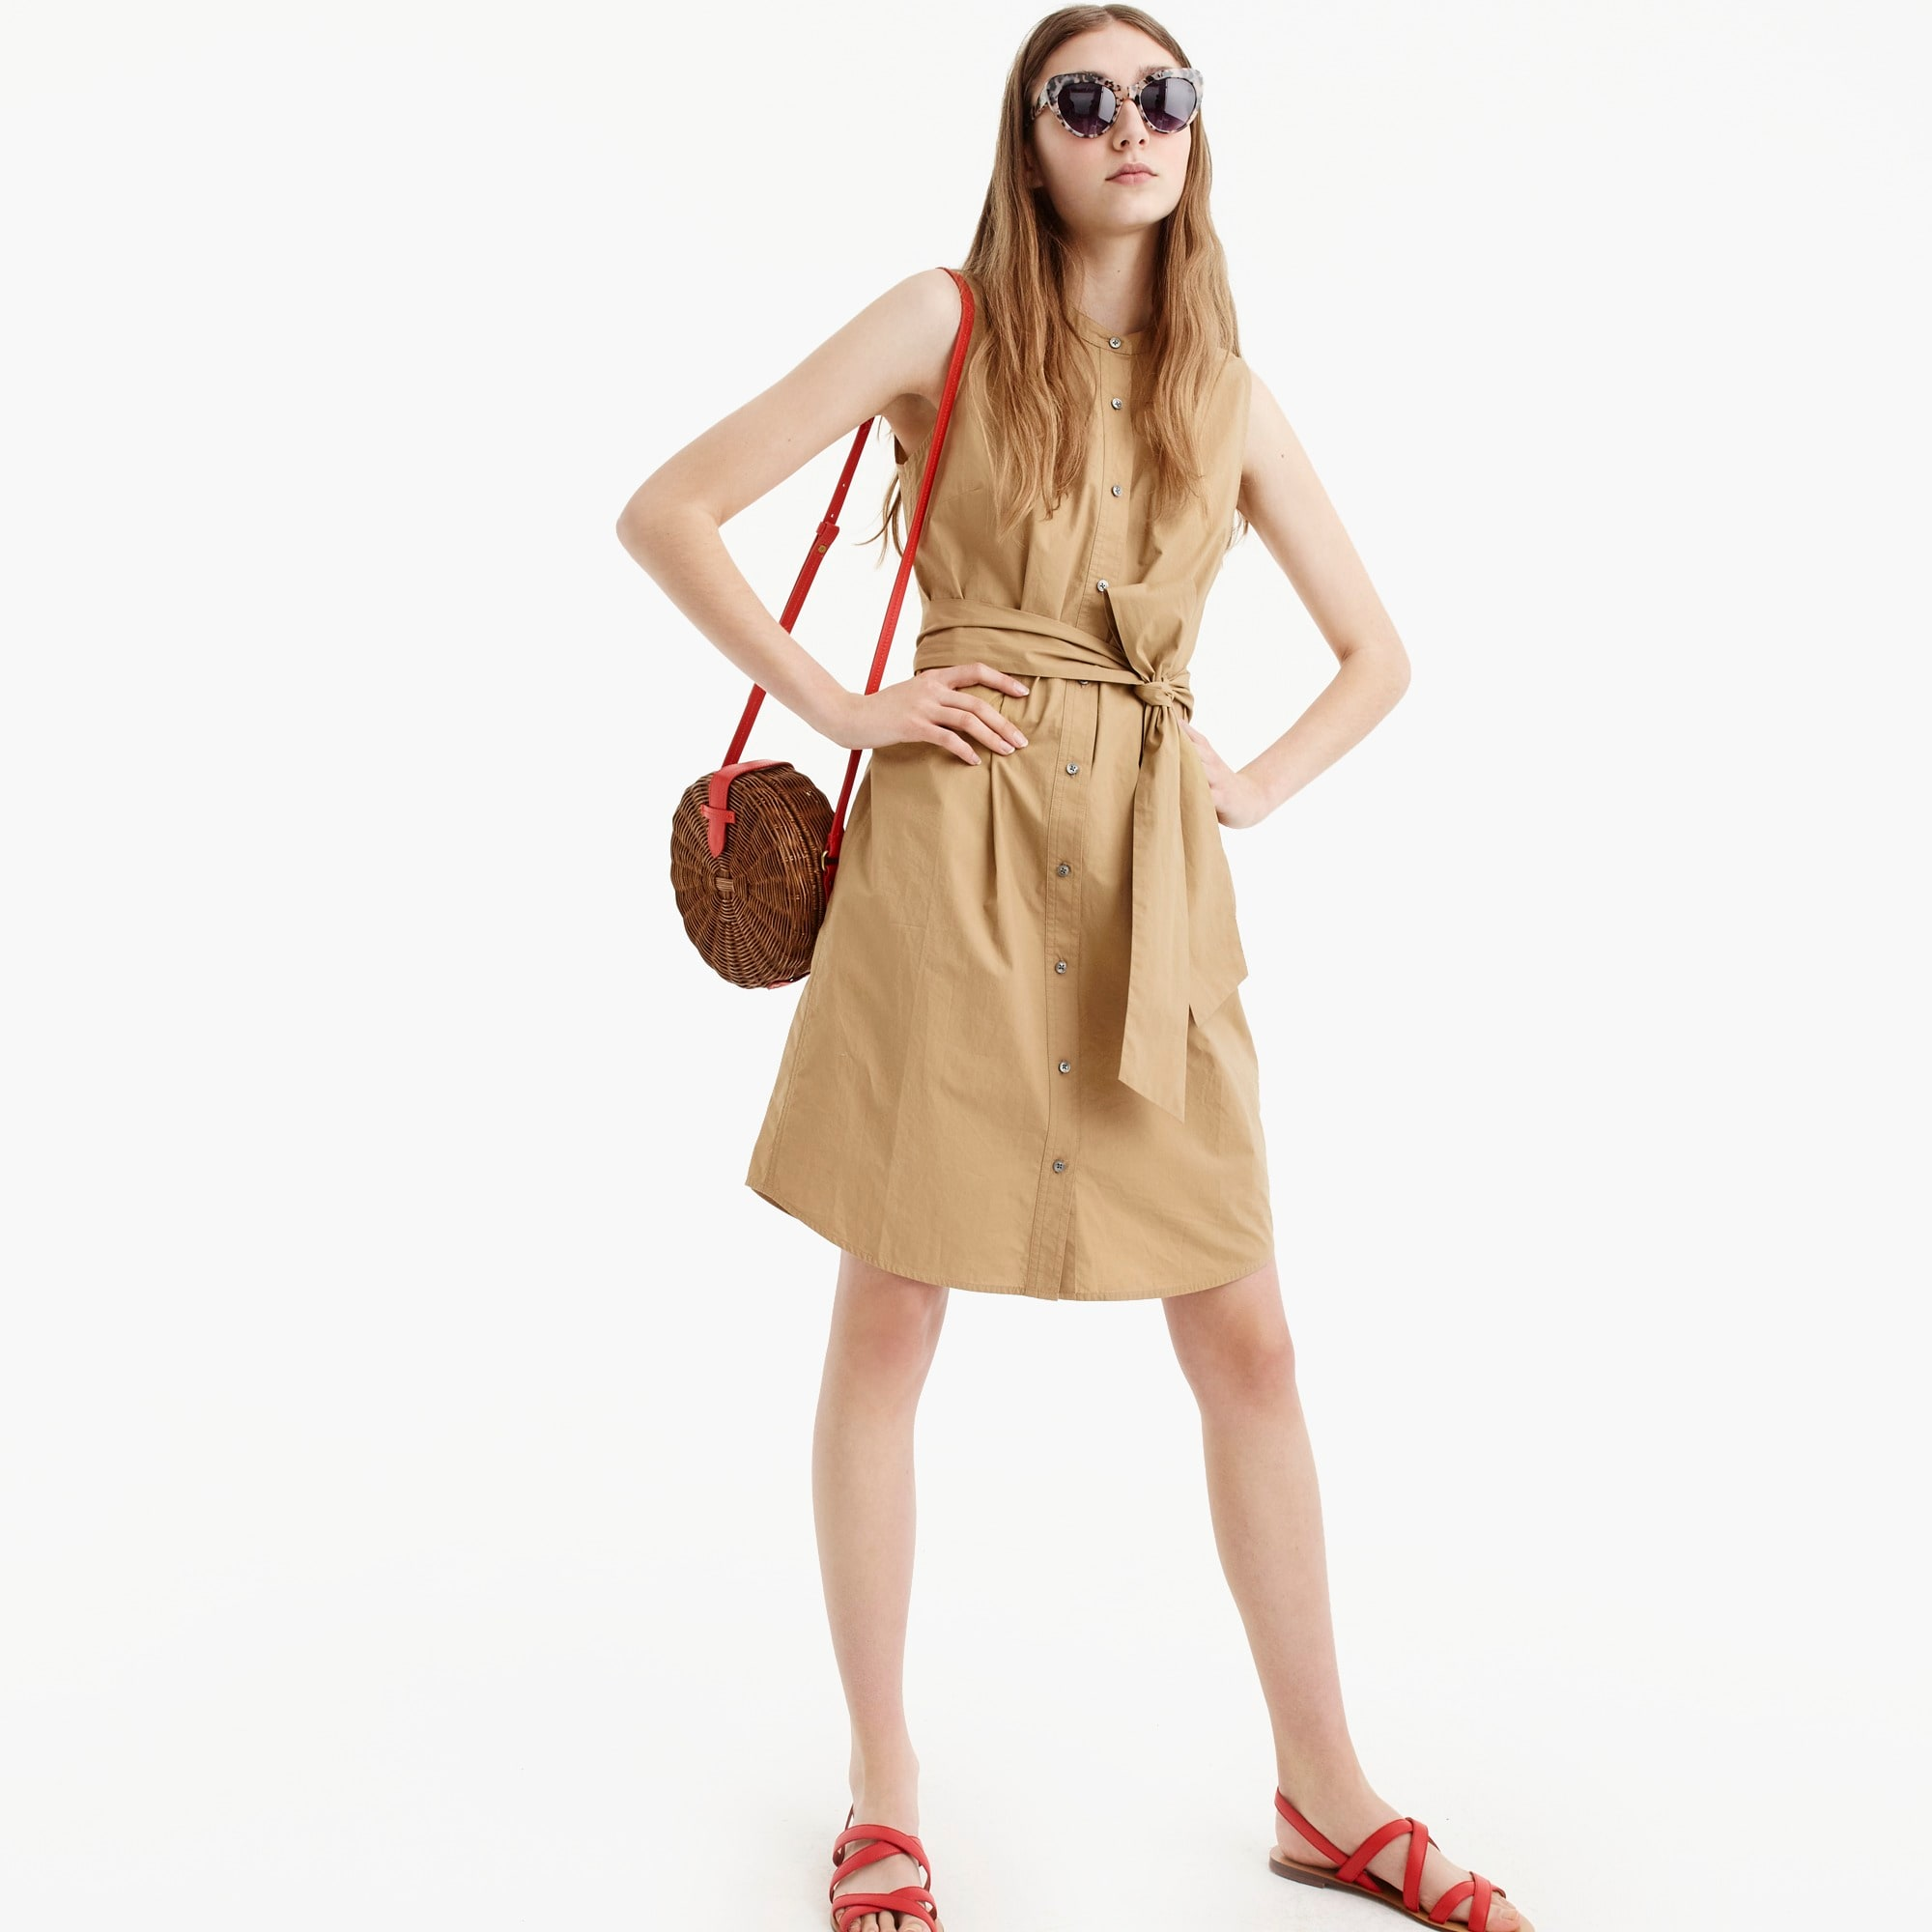 Image 1 for Sleeveless shirtdress in cotton poplin